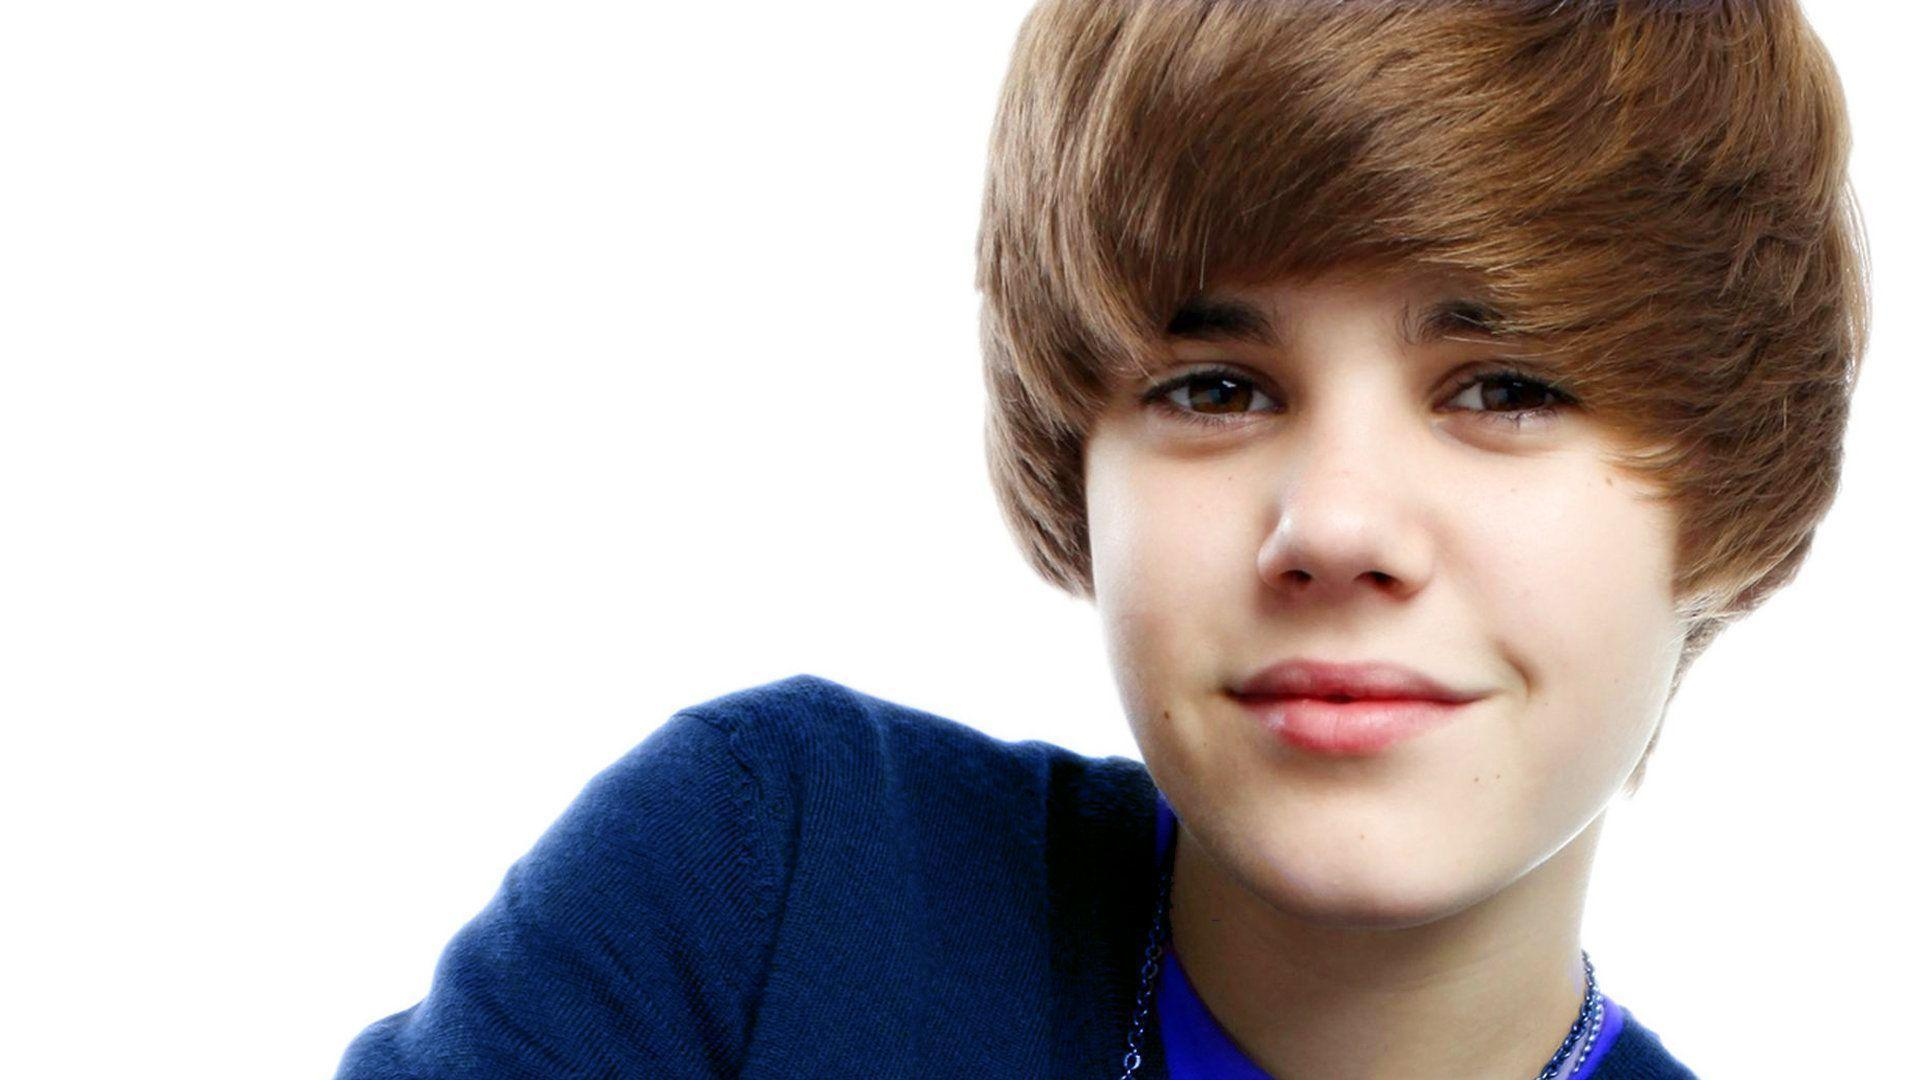 Justin bieber young wallpapers hd wallpapers inn download